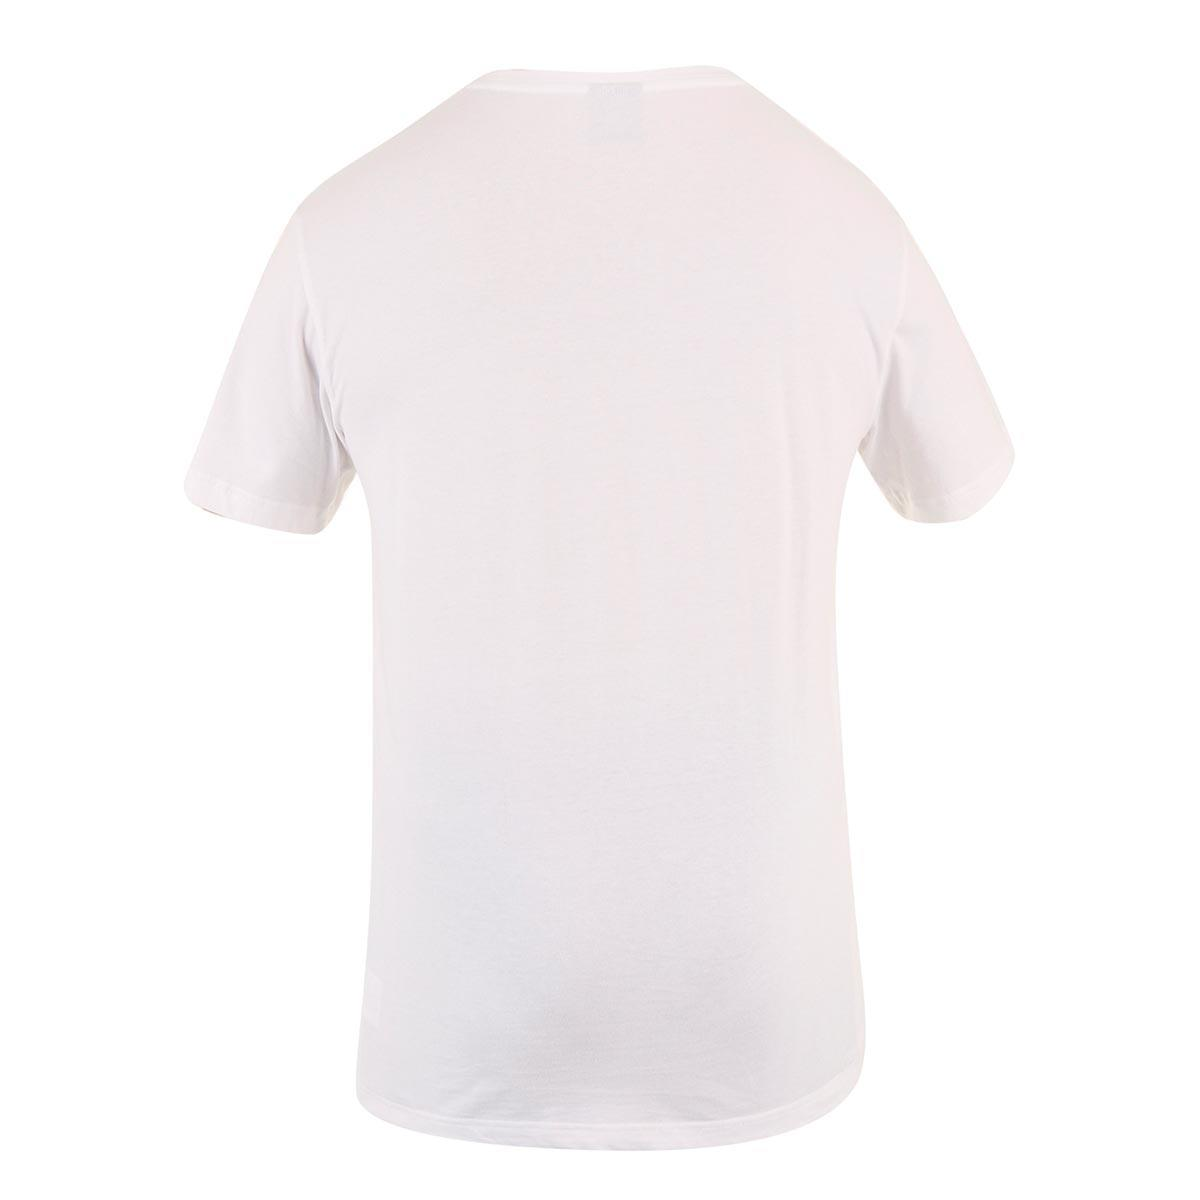 bff2ae4fd Kids White Canterbury Teamwear Team Plain Tee Shirt | rugbystore